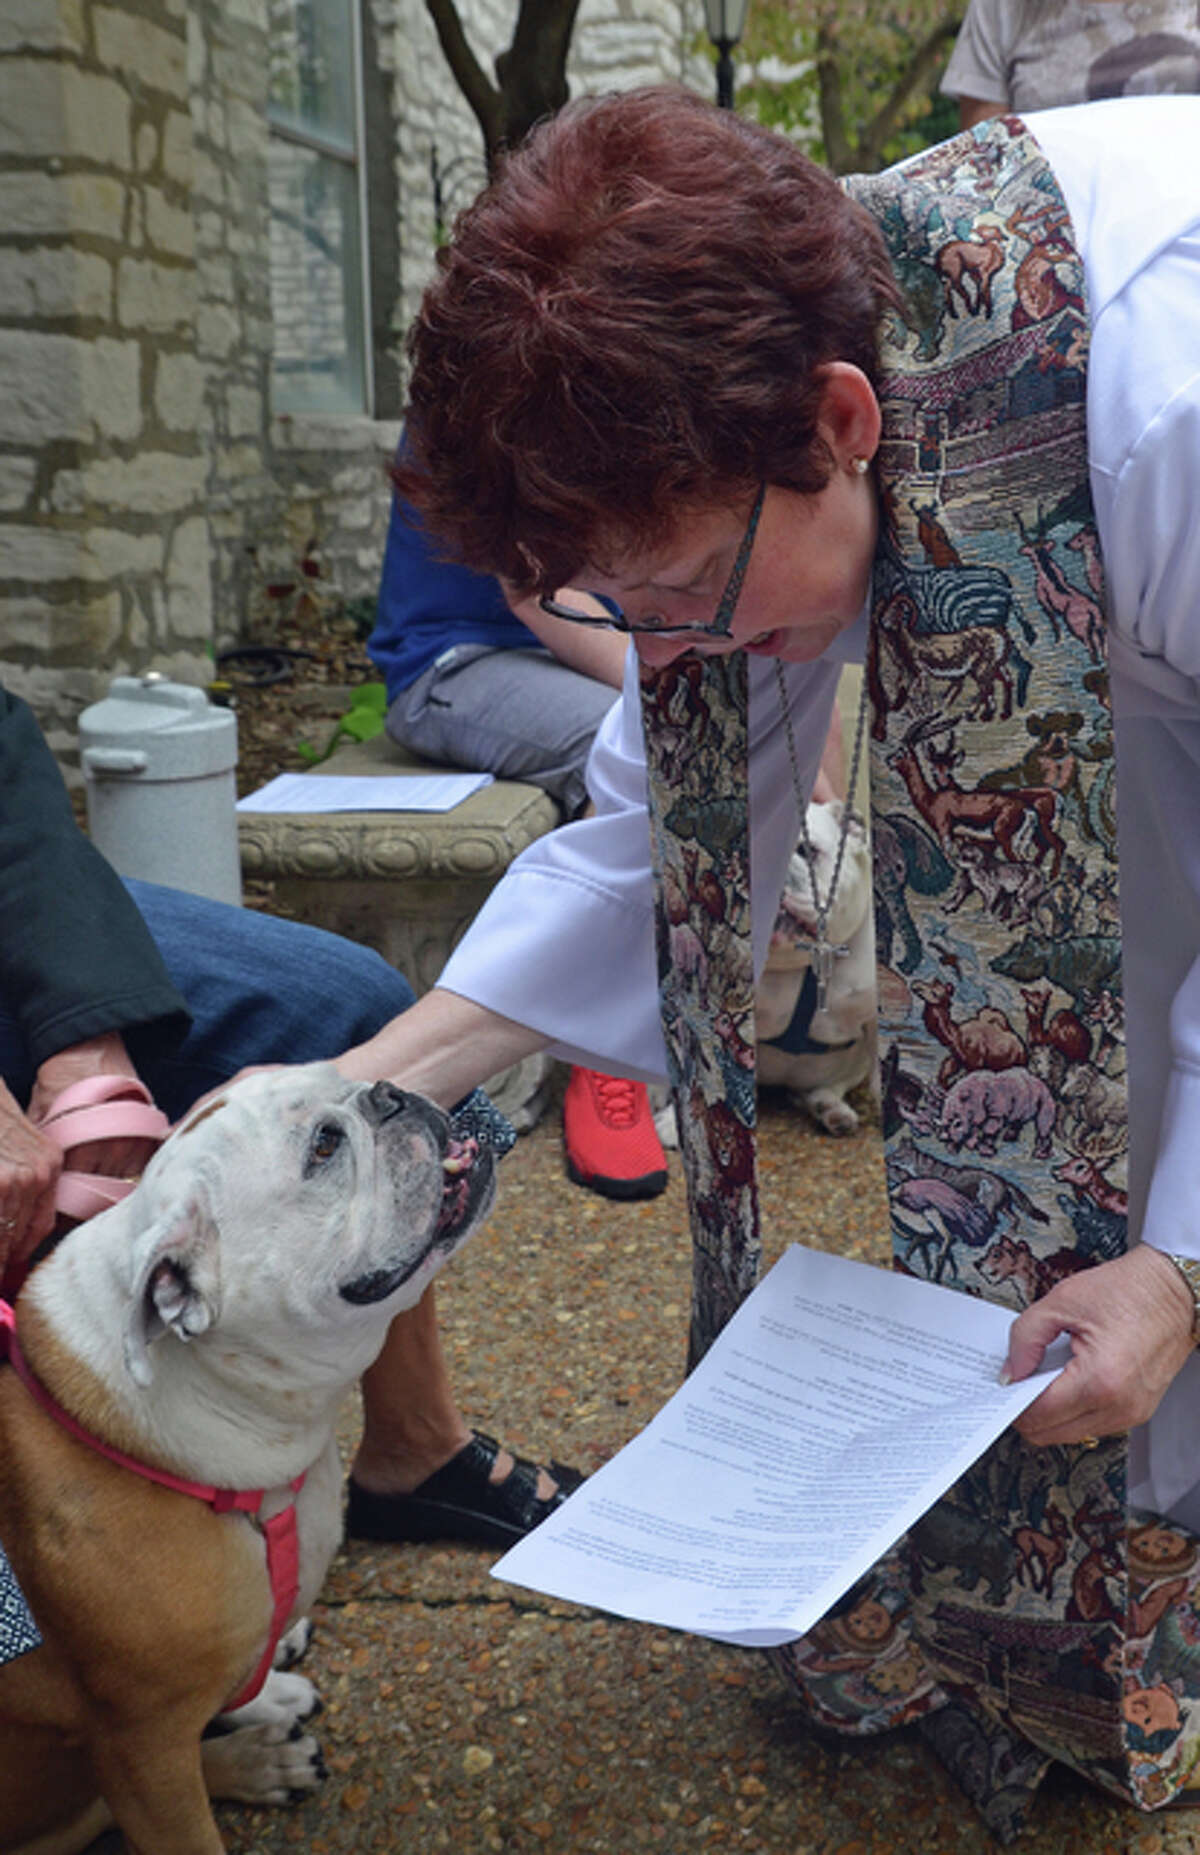 Maggie the bulldog receives a blessing Sunday afternoon from rector Cynthia Sever during the annual Blessing of the Animals service at the Episcopal Parish of Alton located Downtown.